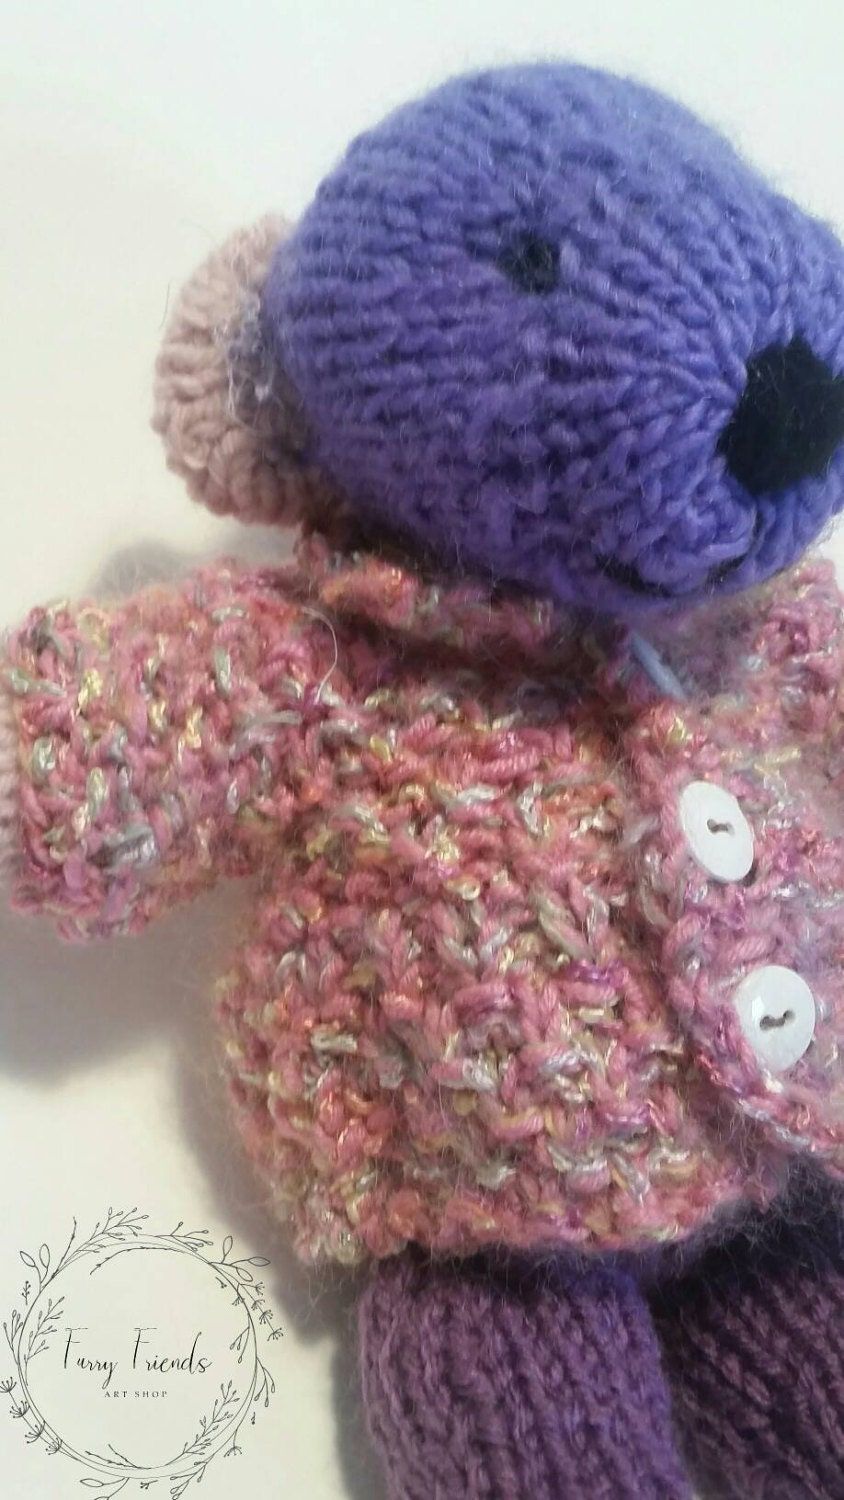 Sammy The Purple Hand Knit Wool Stuffed Teddy Bear With a Pink Wool Sweater